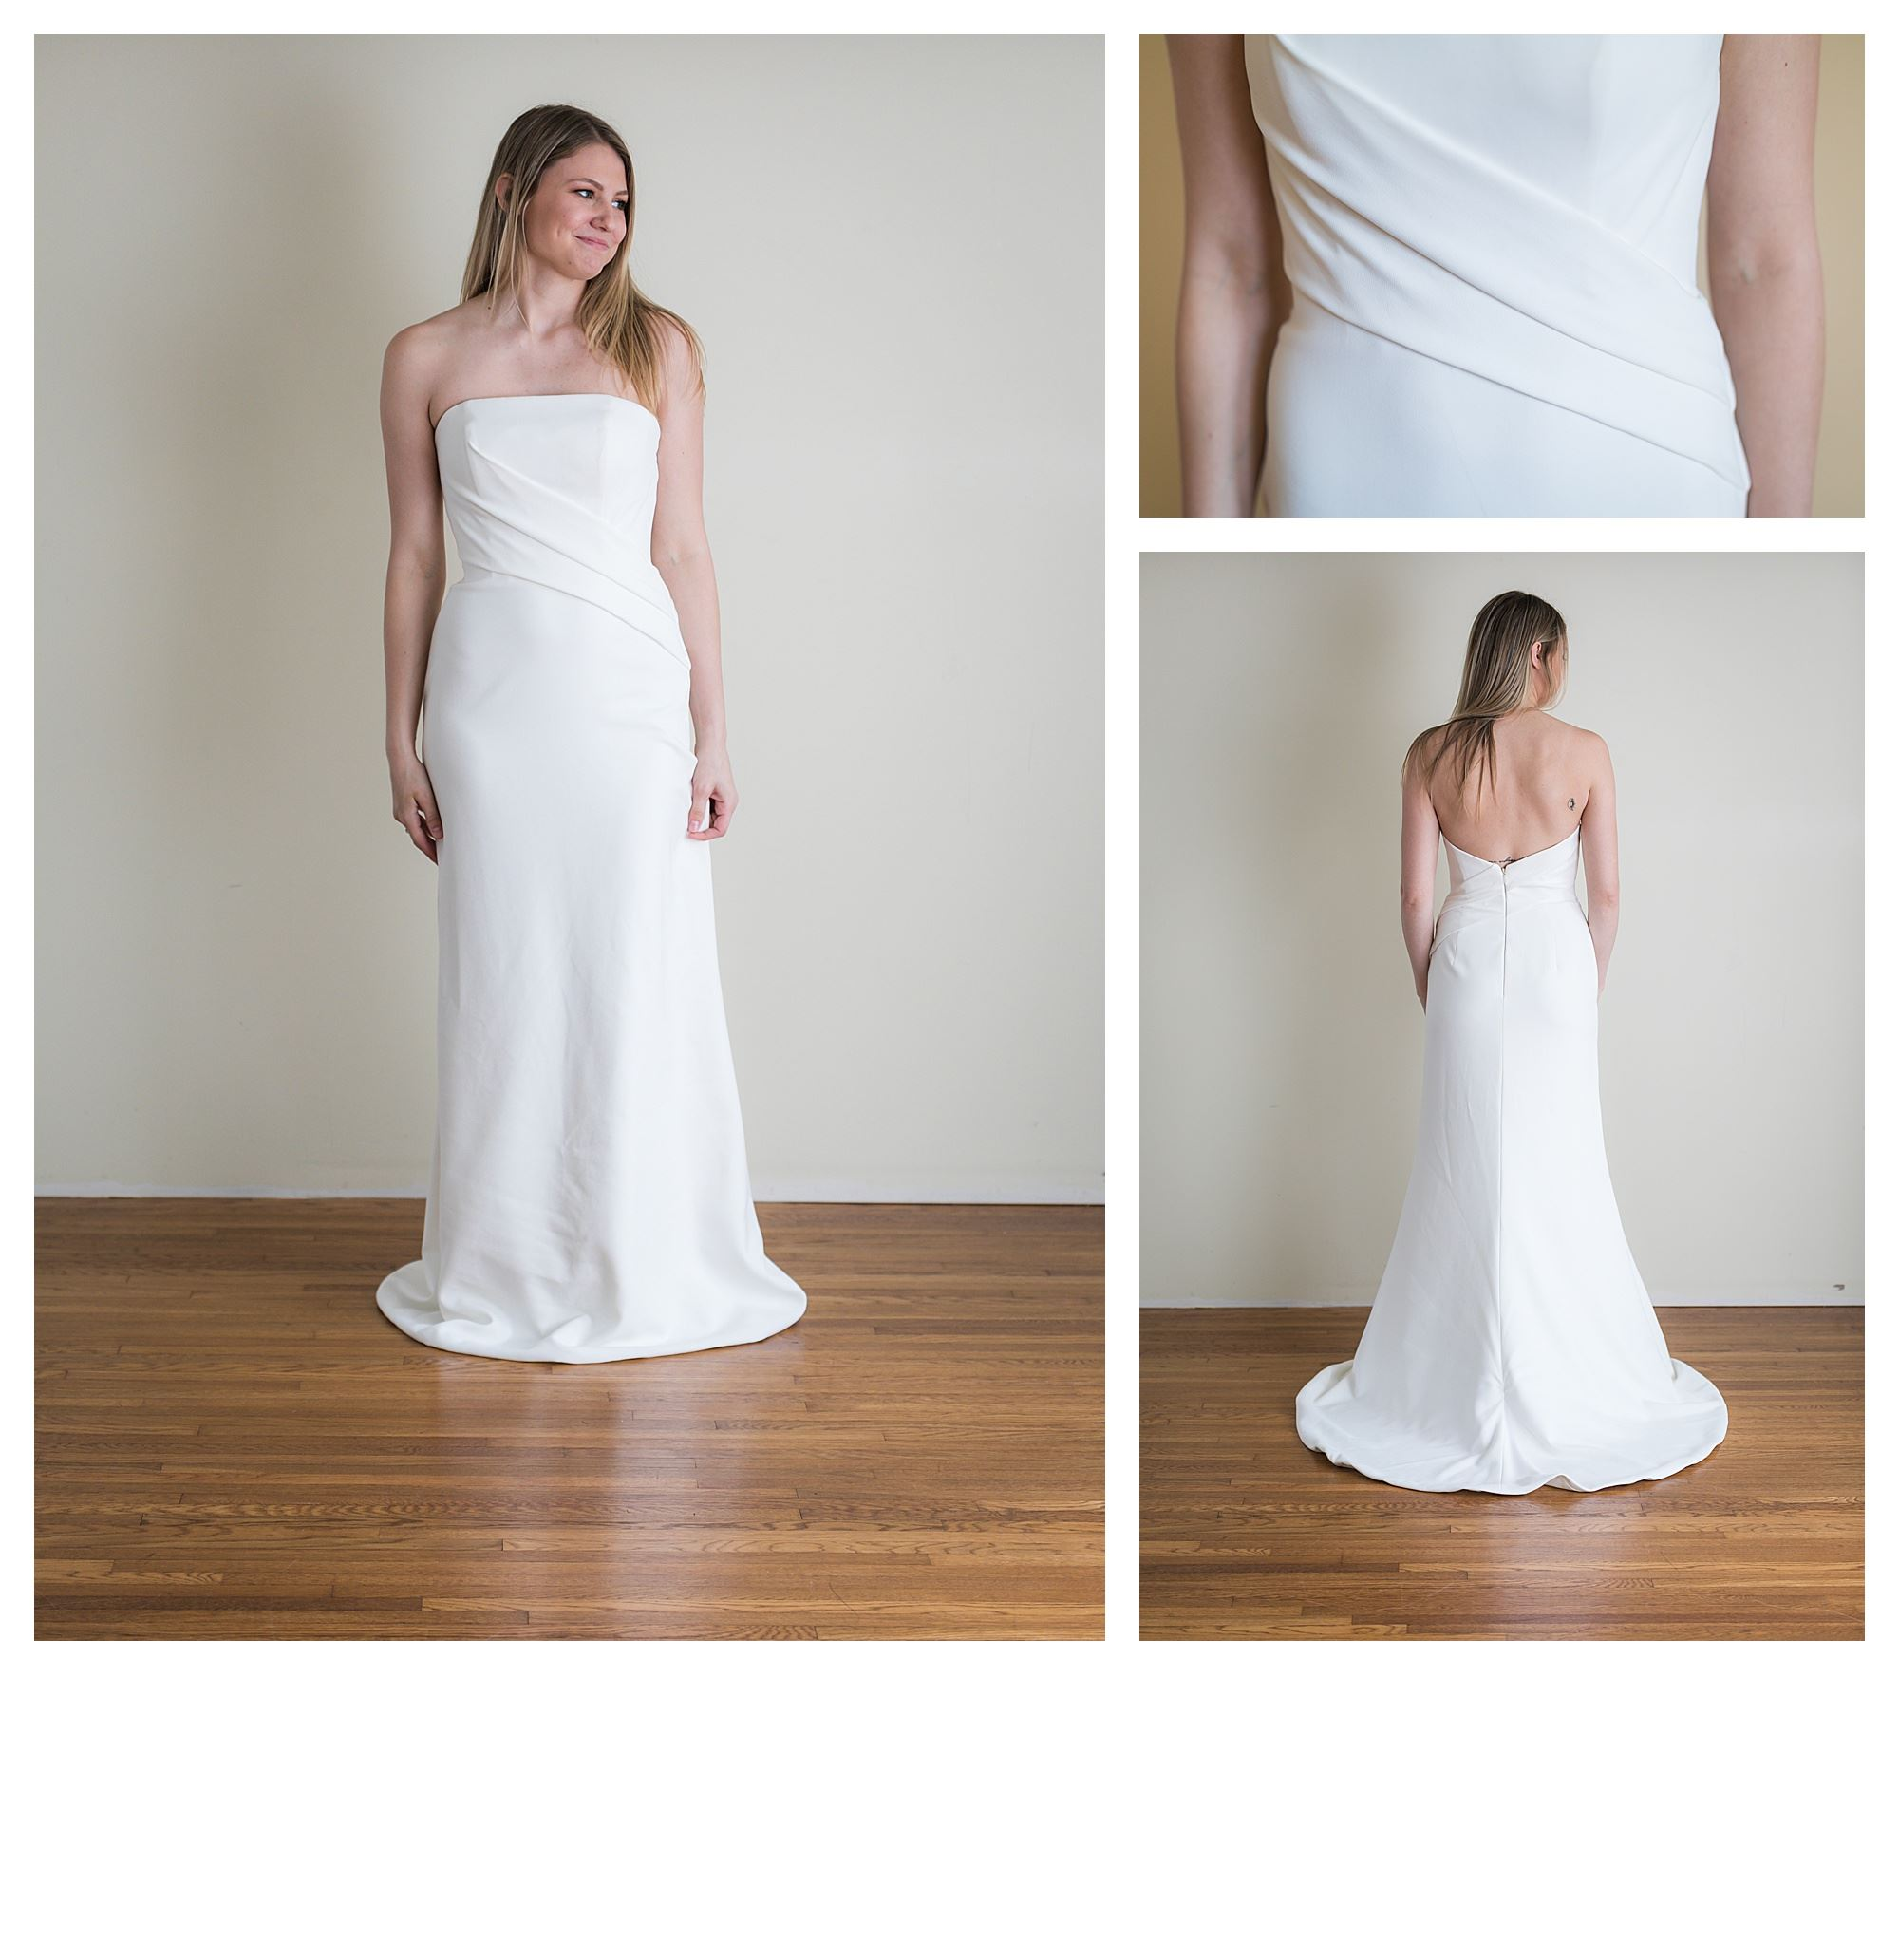 Saniyah - Size 10 - Ivory - Originally priced $2399 - Sample box price $1599